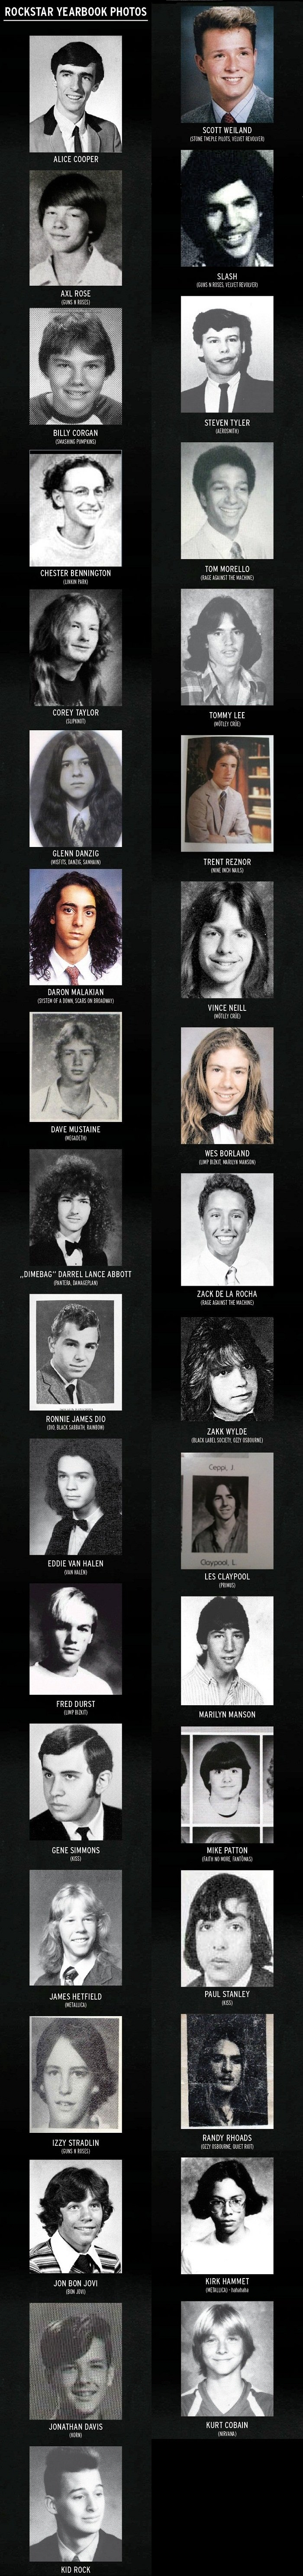 Rockstar-Yearbook-Photos Rock Star Yearbook Photo Collection